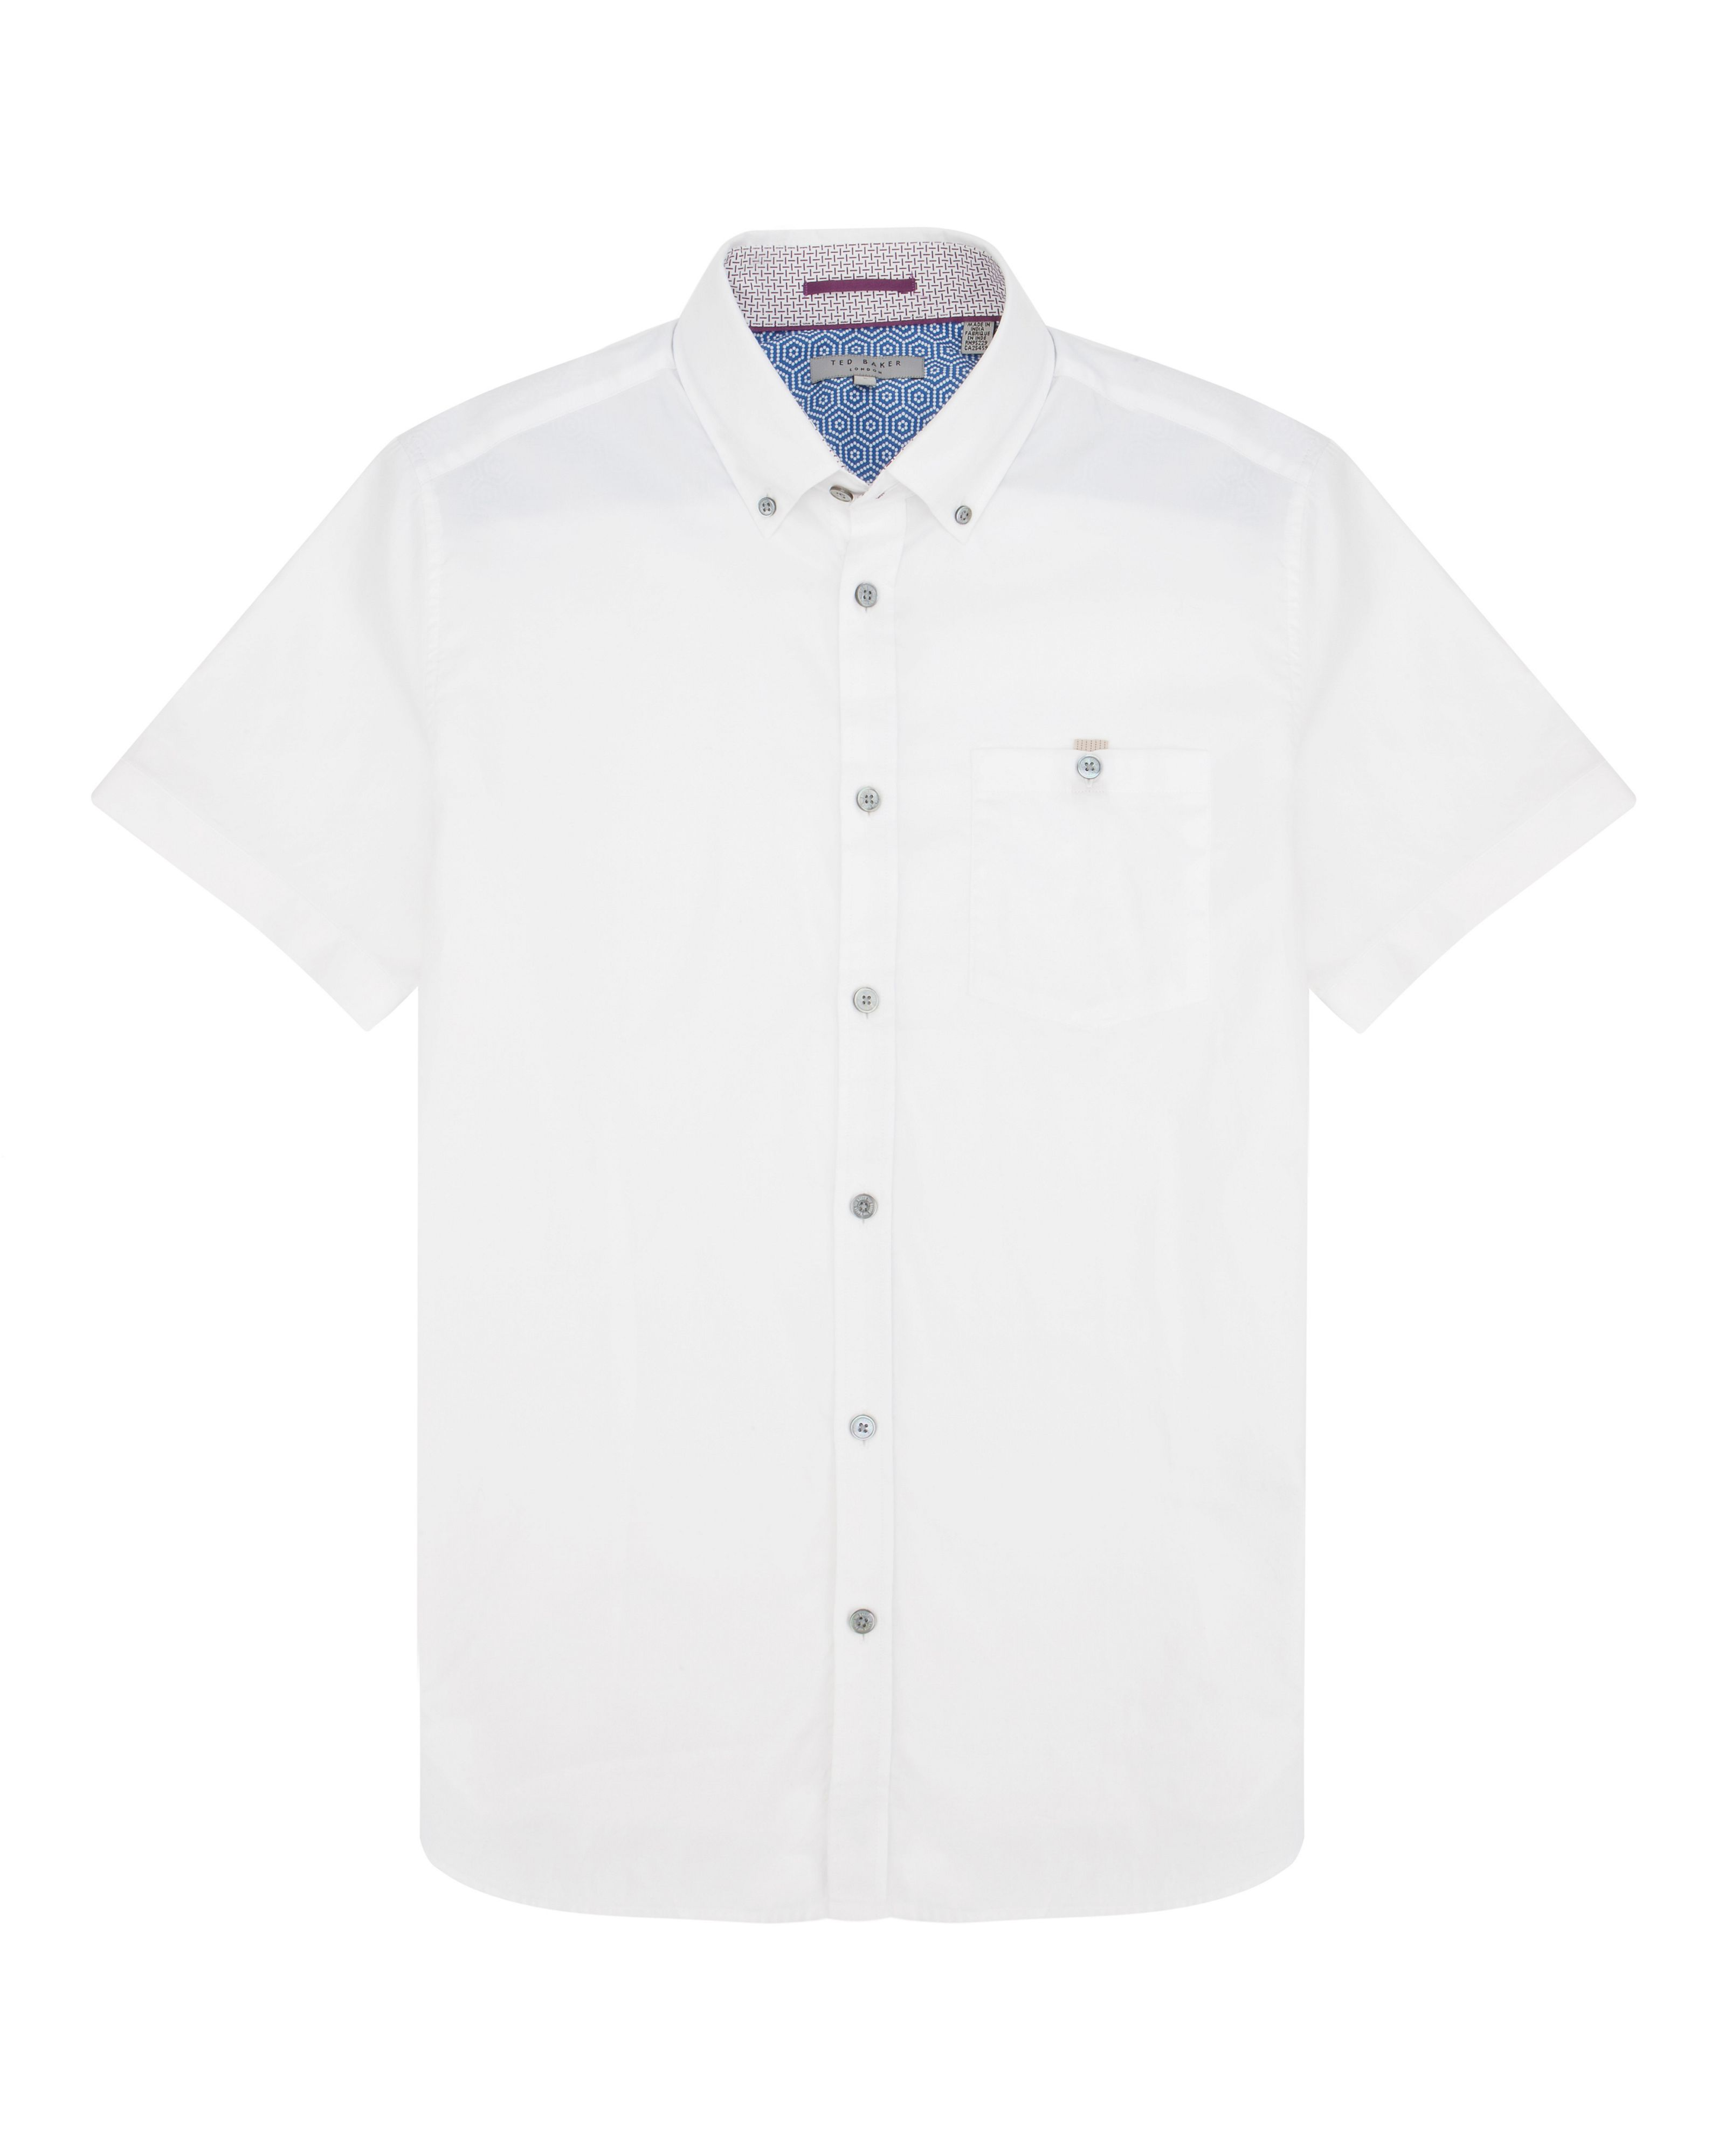 Keenan oxford shirt